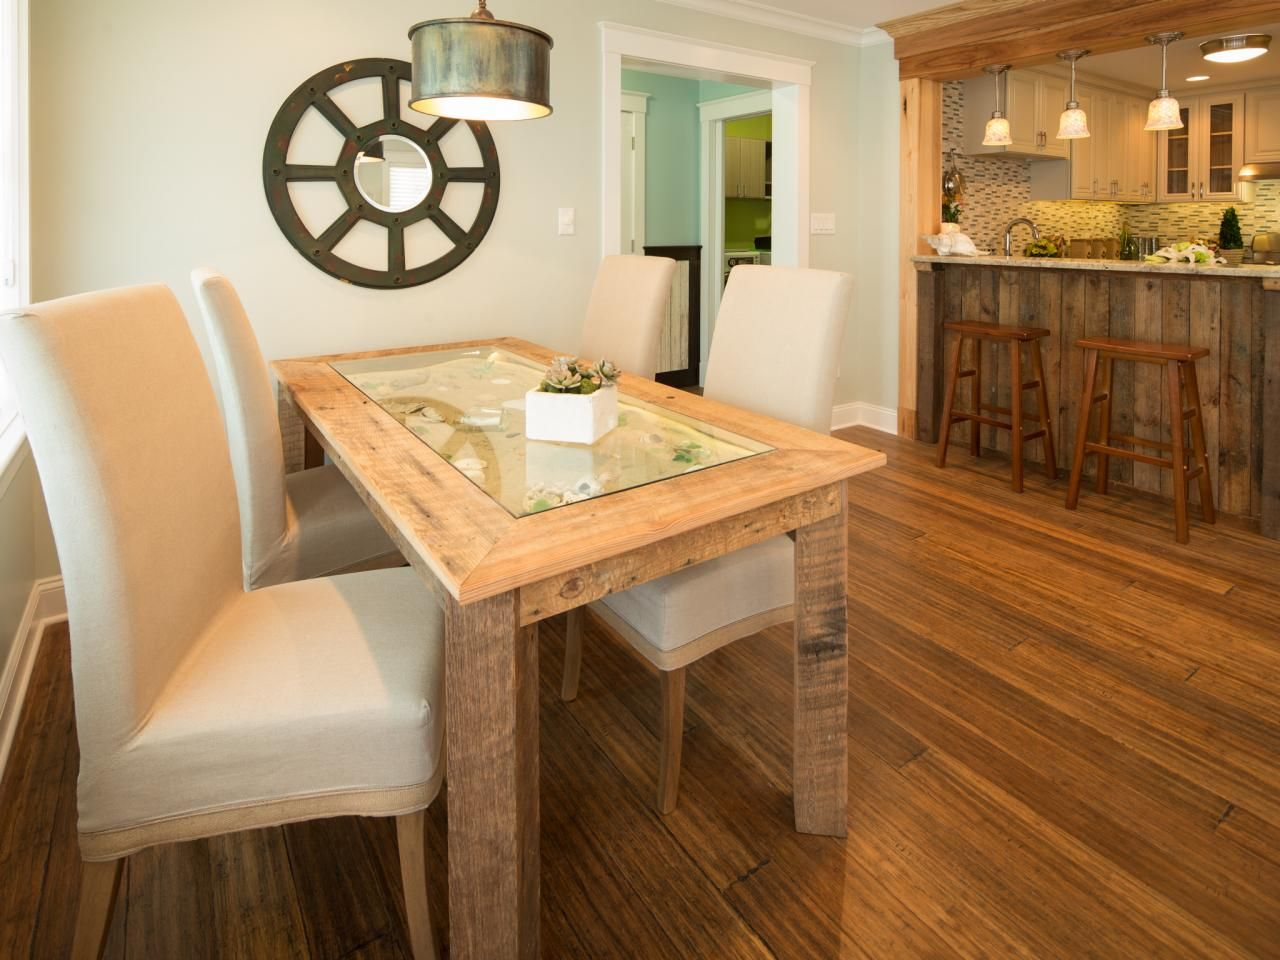 Reclaimed kitchen table  How To Build a Reclaimed Wood Dining Table  DIY Network Blog Cabin